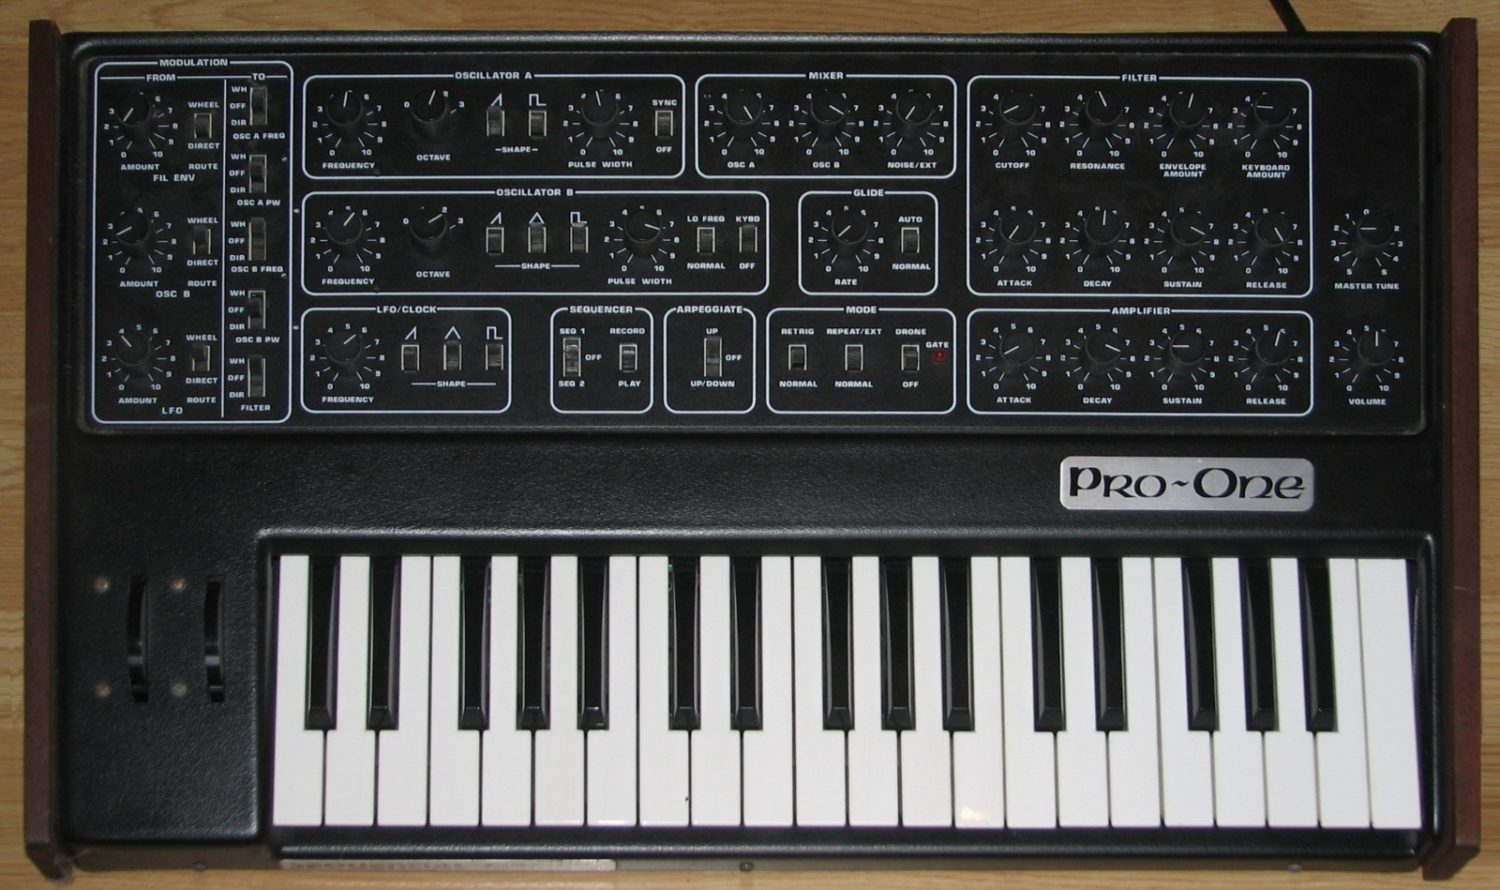 Is Behringer Cloning The Sequential Circuits Pro One Next Synthtopia Electronic Keyboard Circuit Compare Board Photo Above With Layout Of